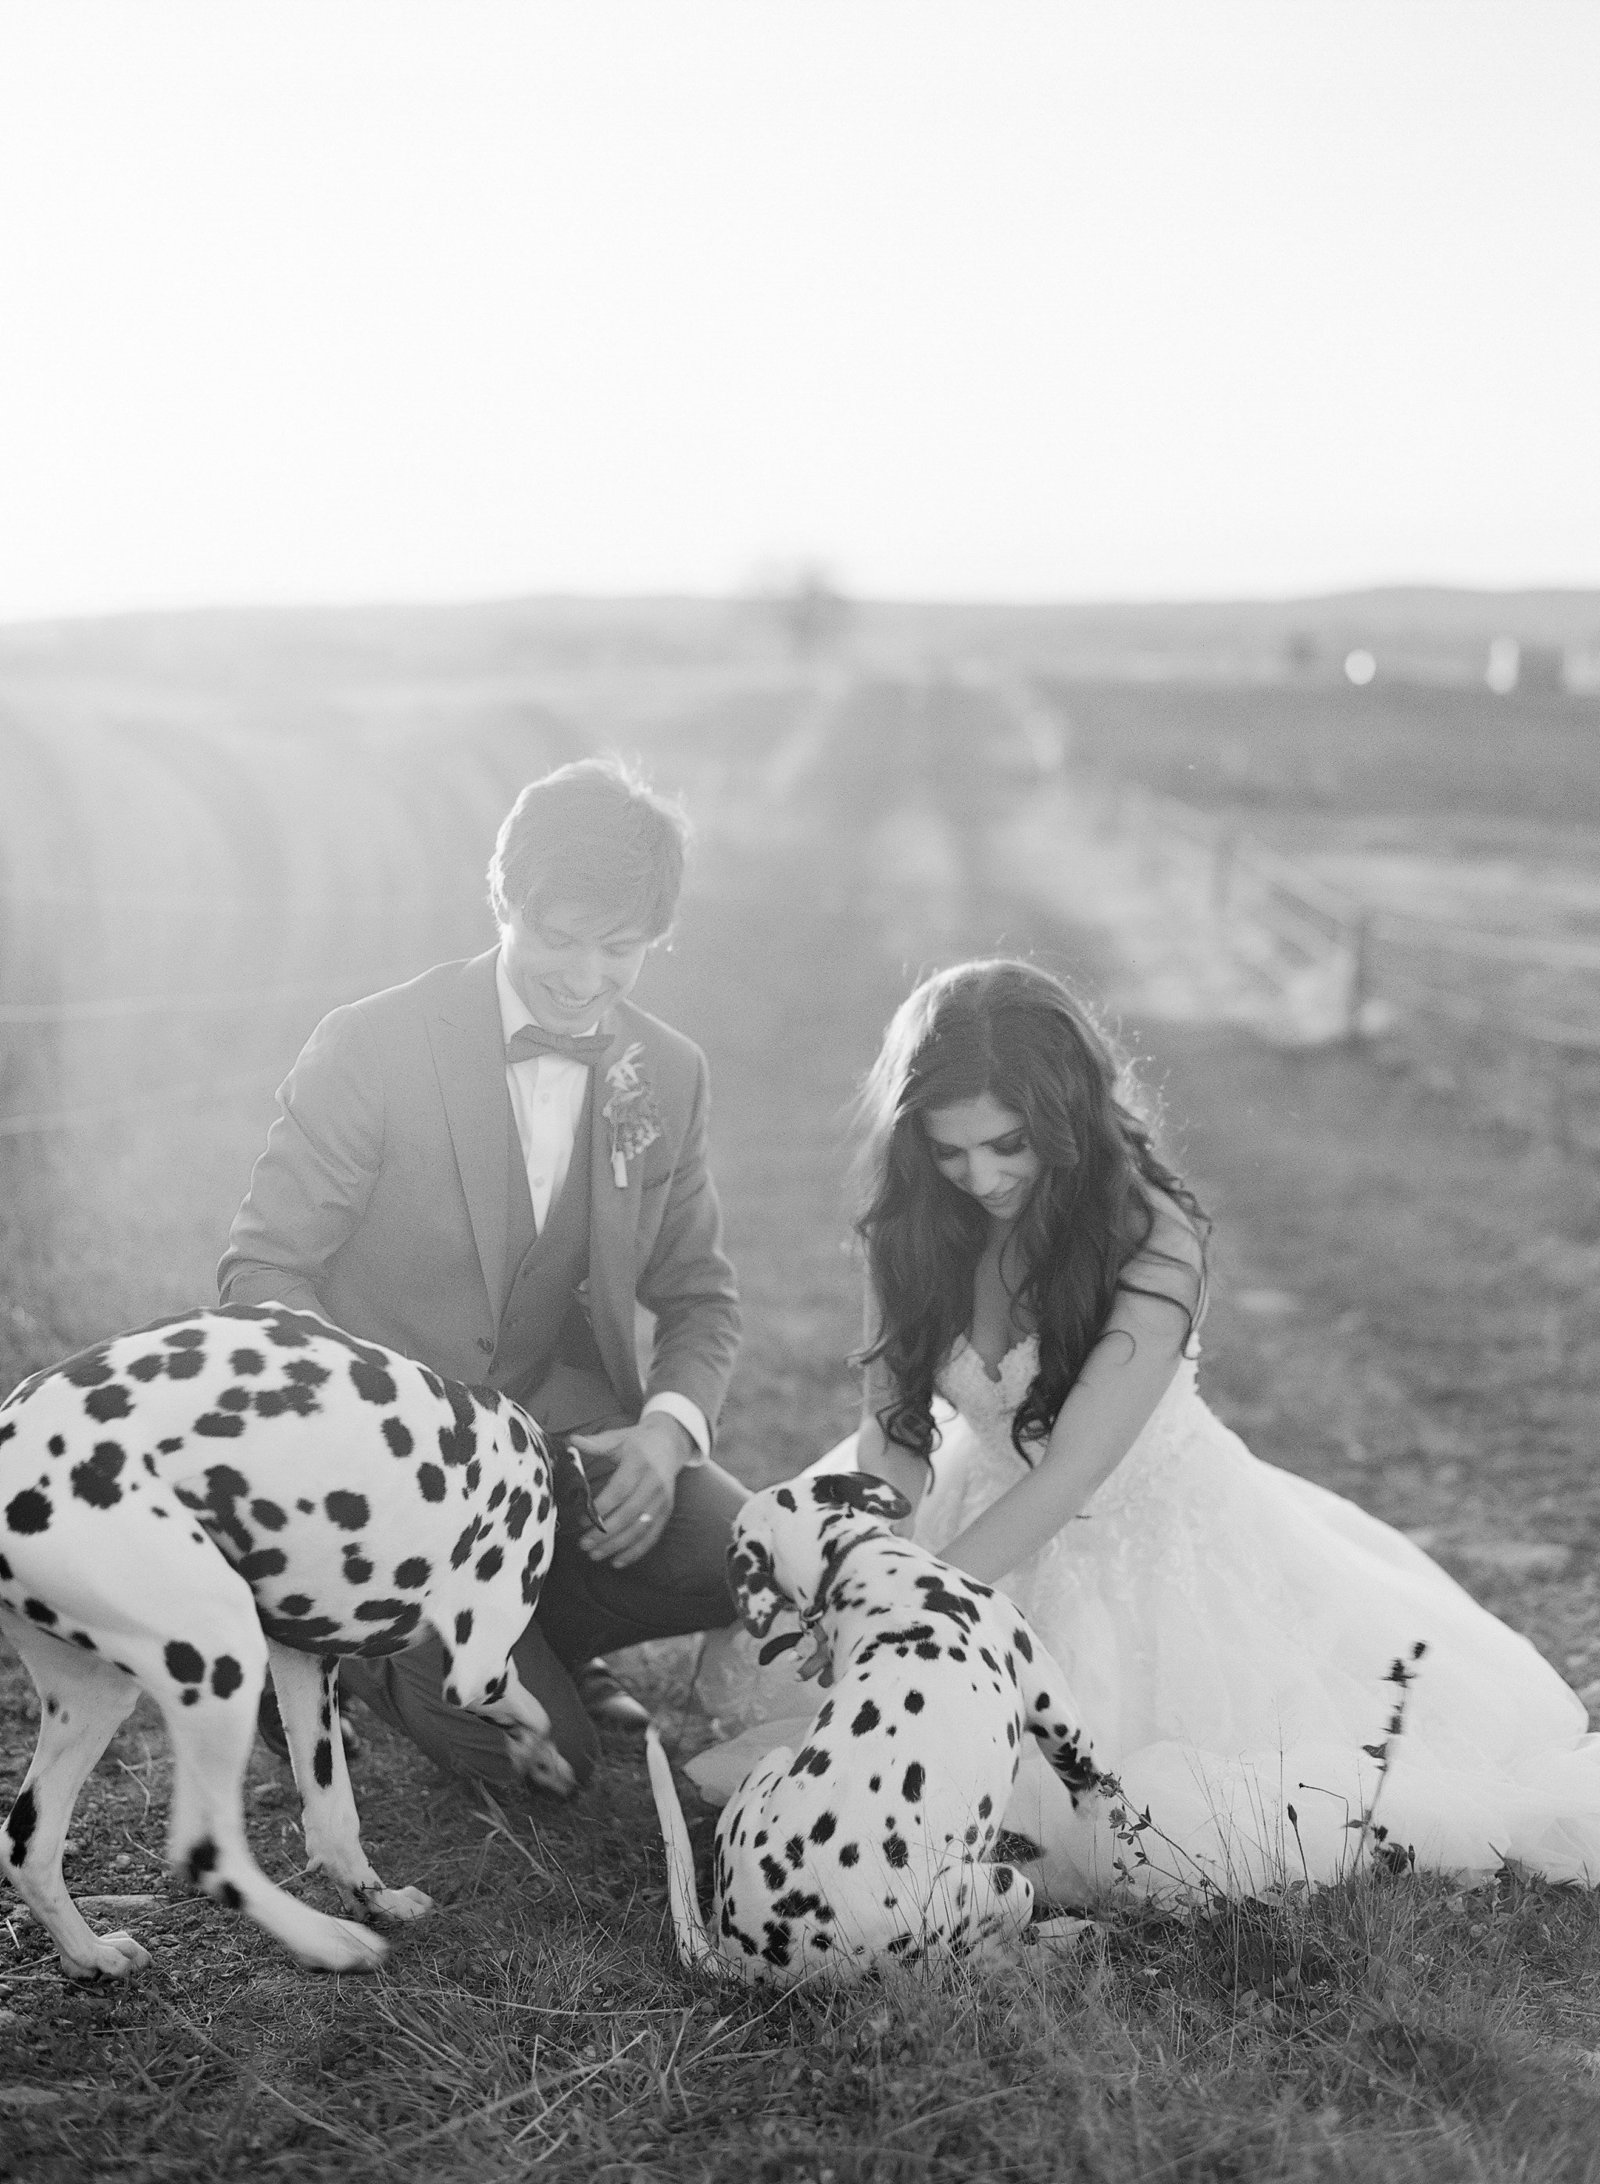 Jacqueline-Anne-Photography-Ella-and-Wyatt-Post-Wedding-Session-210